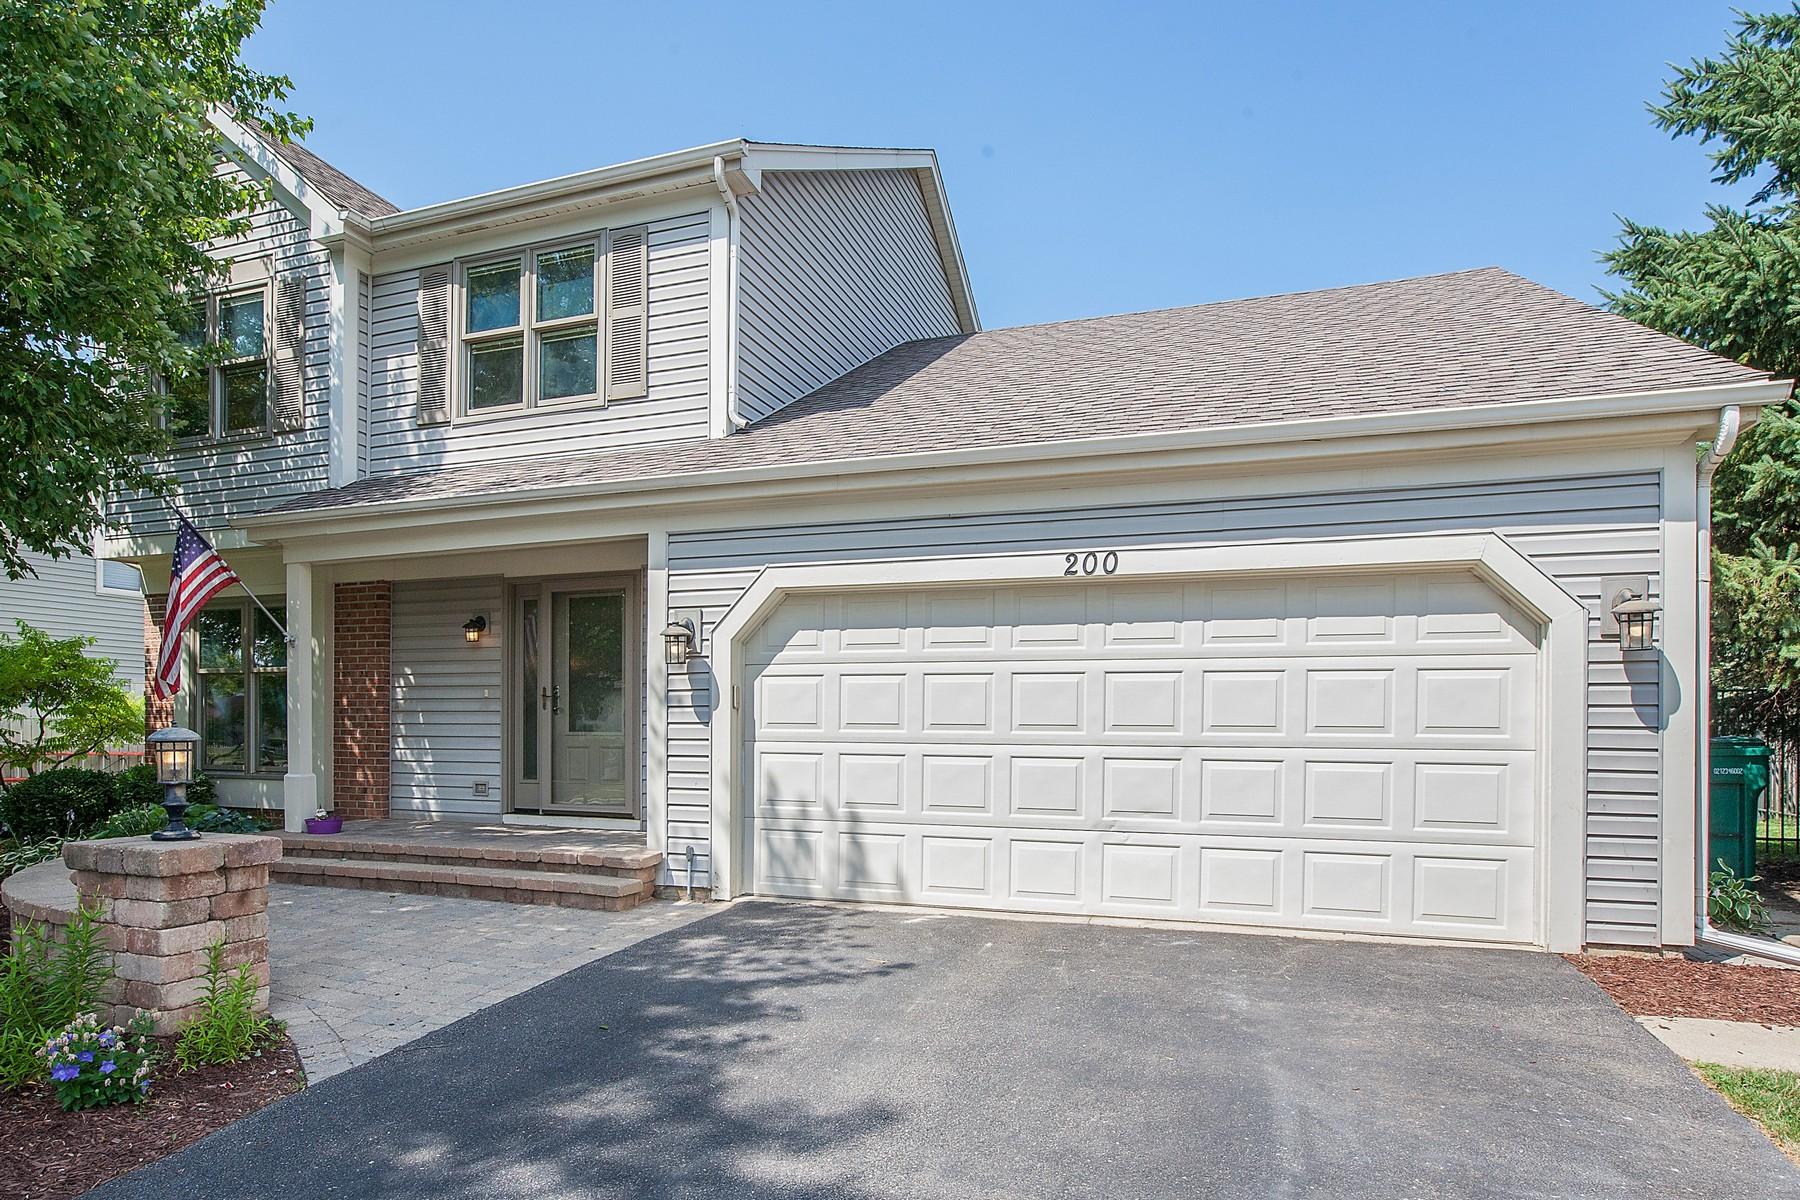 Maison unifamiliale pour l Vente à Beautifully Updated Three Bedroom In Desirable Foxmoor Neighborhood 200 Foxmoor Road Fox River Grove, Illinois, 60021 États-Unis